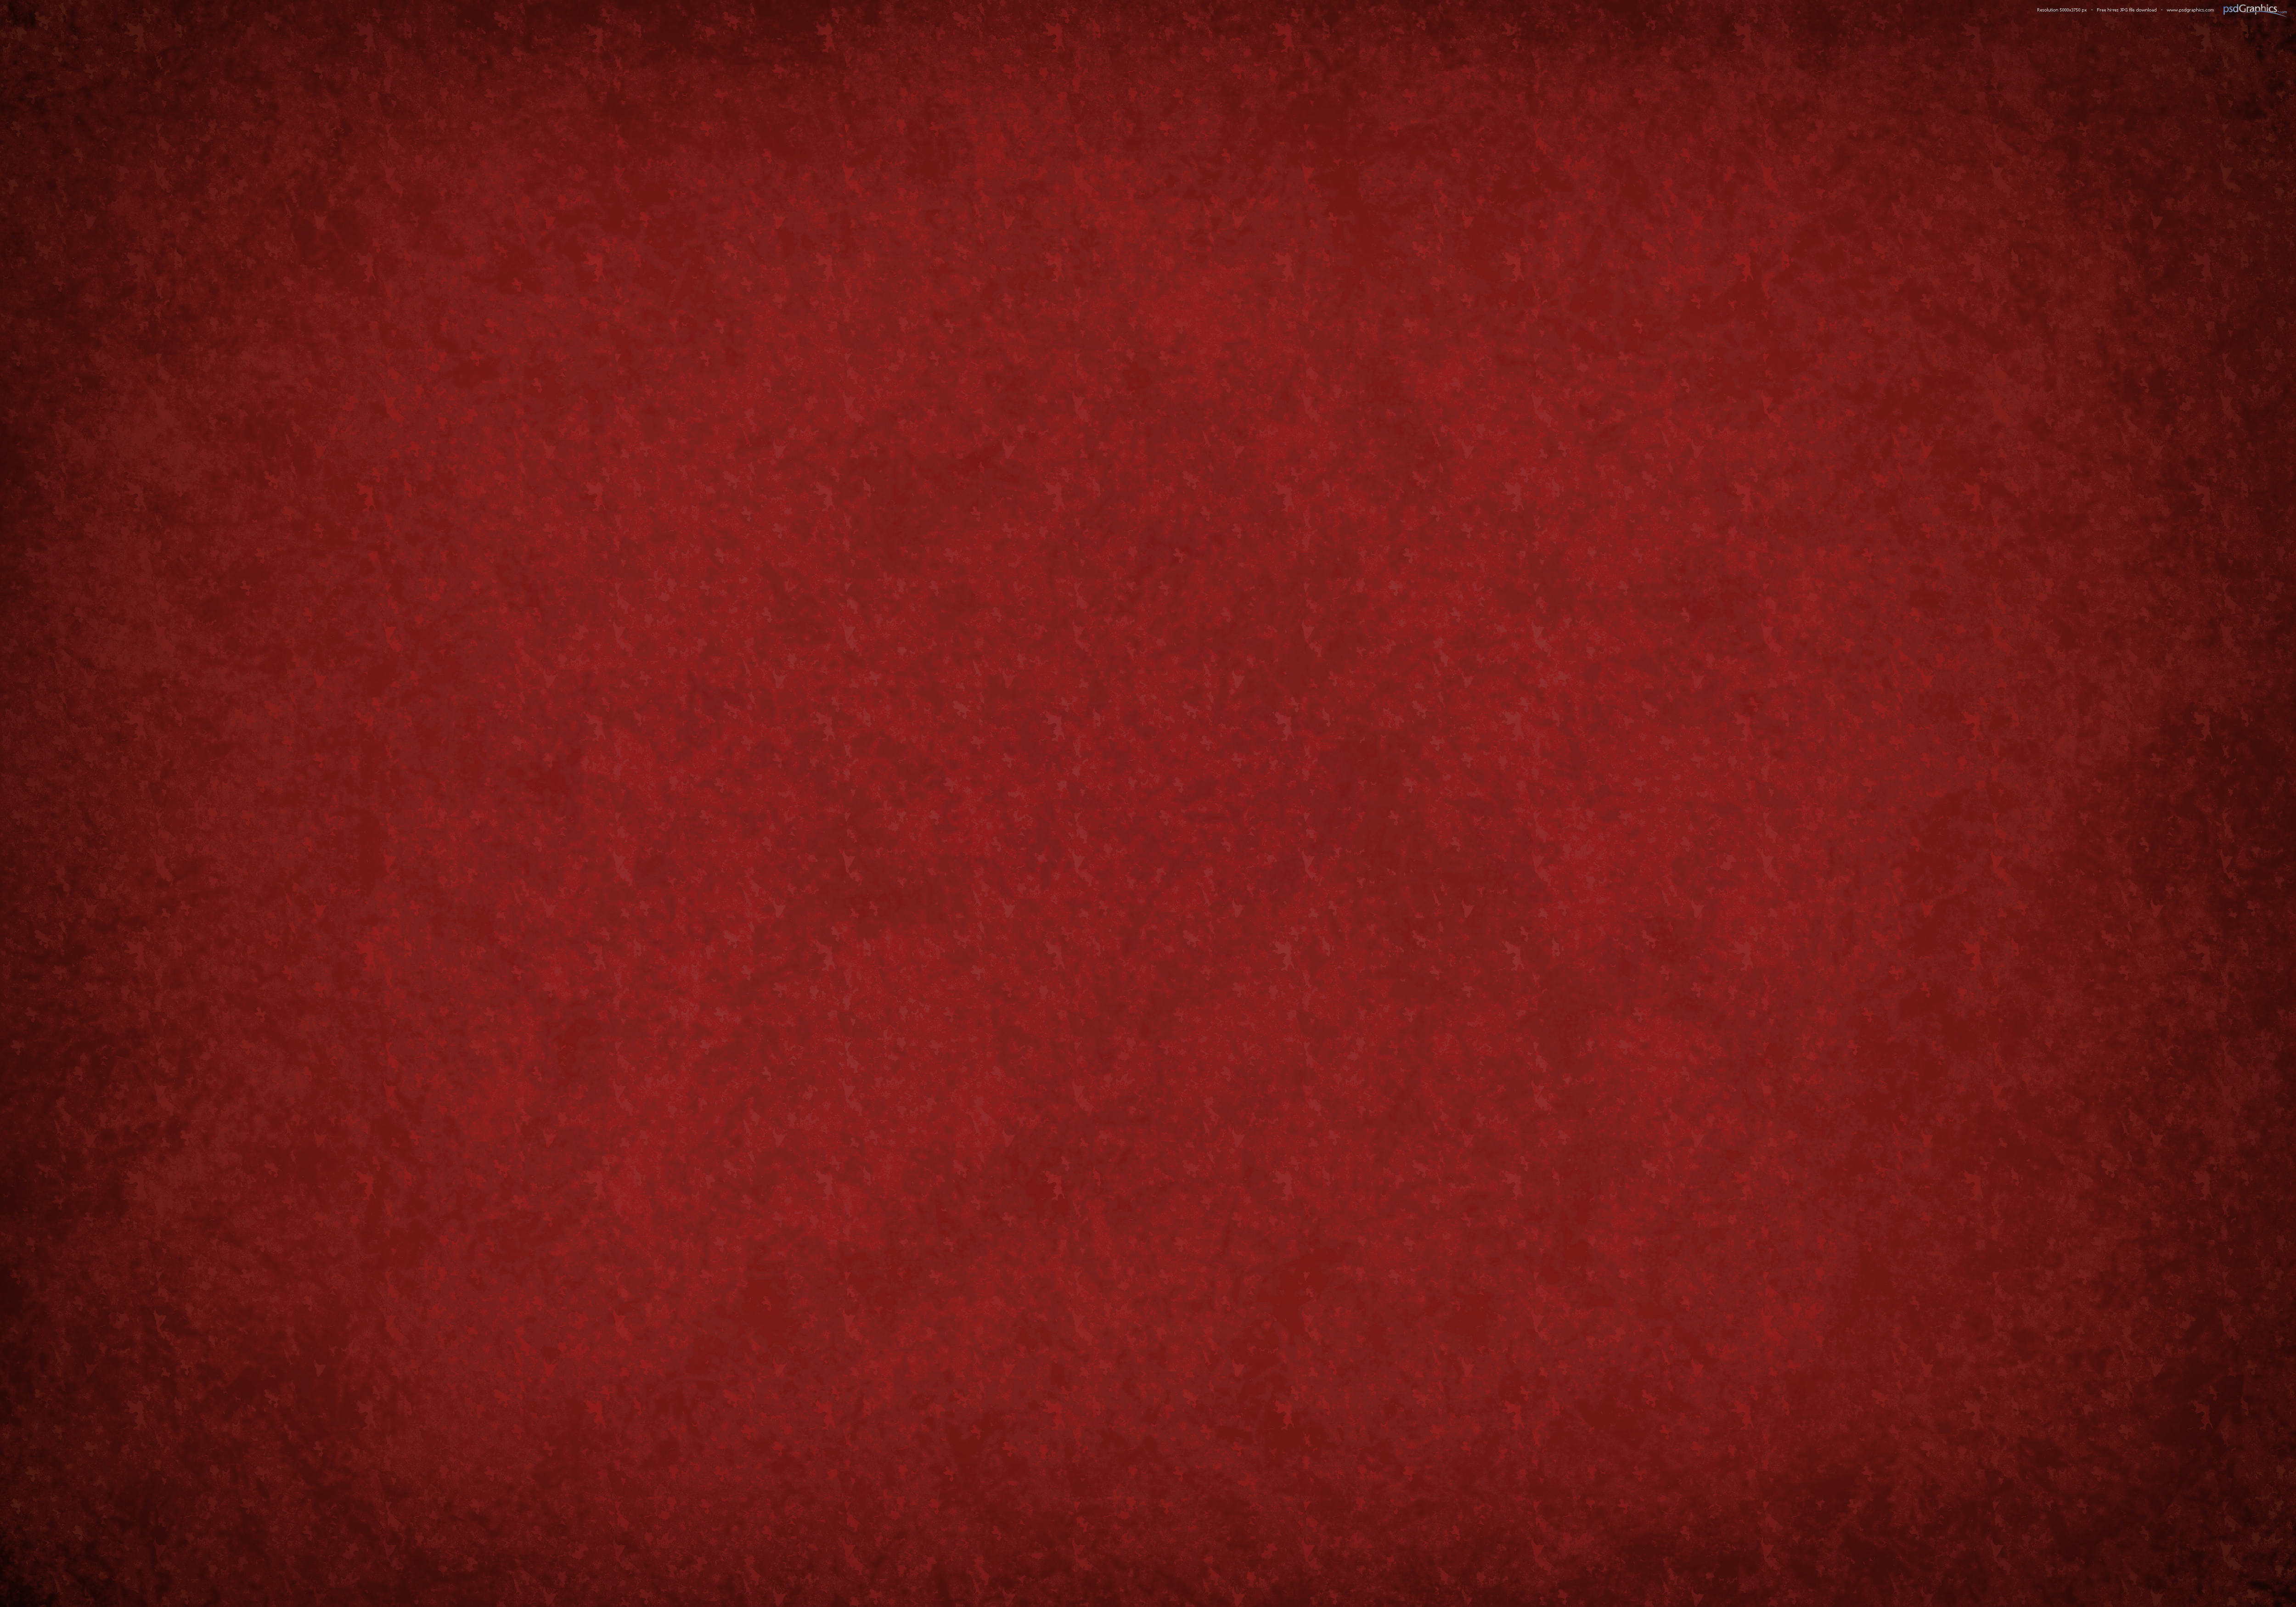 Red and brown grunge backgrounds PSDGraphics 5000x3500